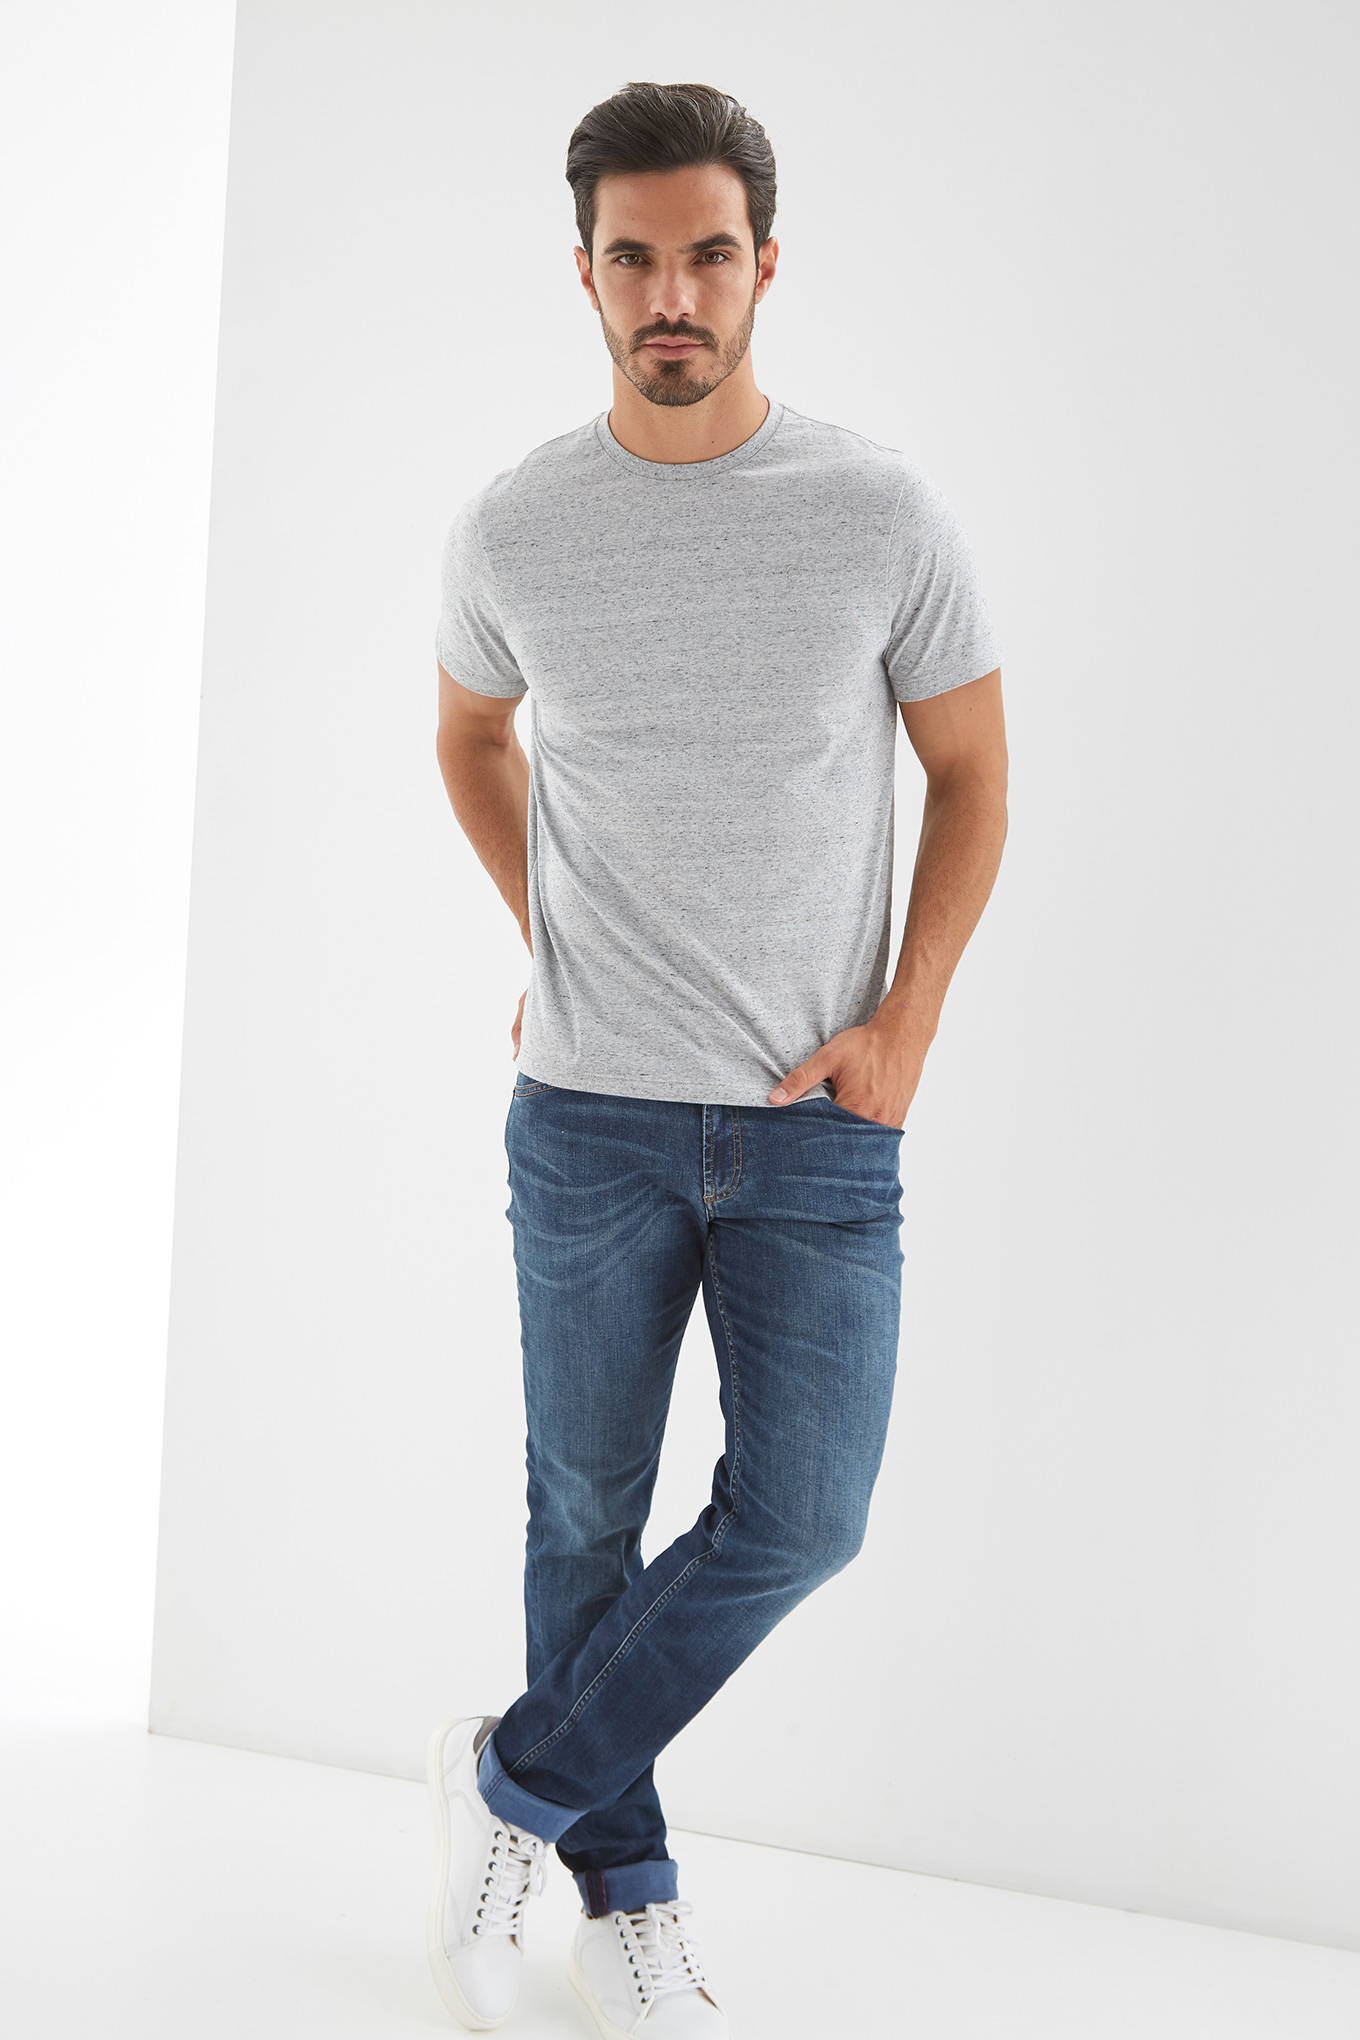 T-Shirt Light Grey Sport Man